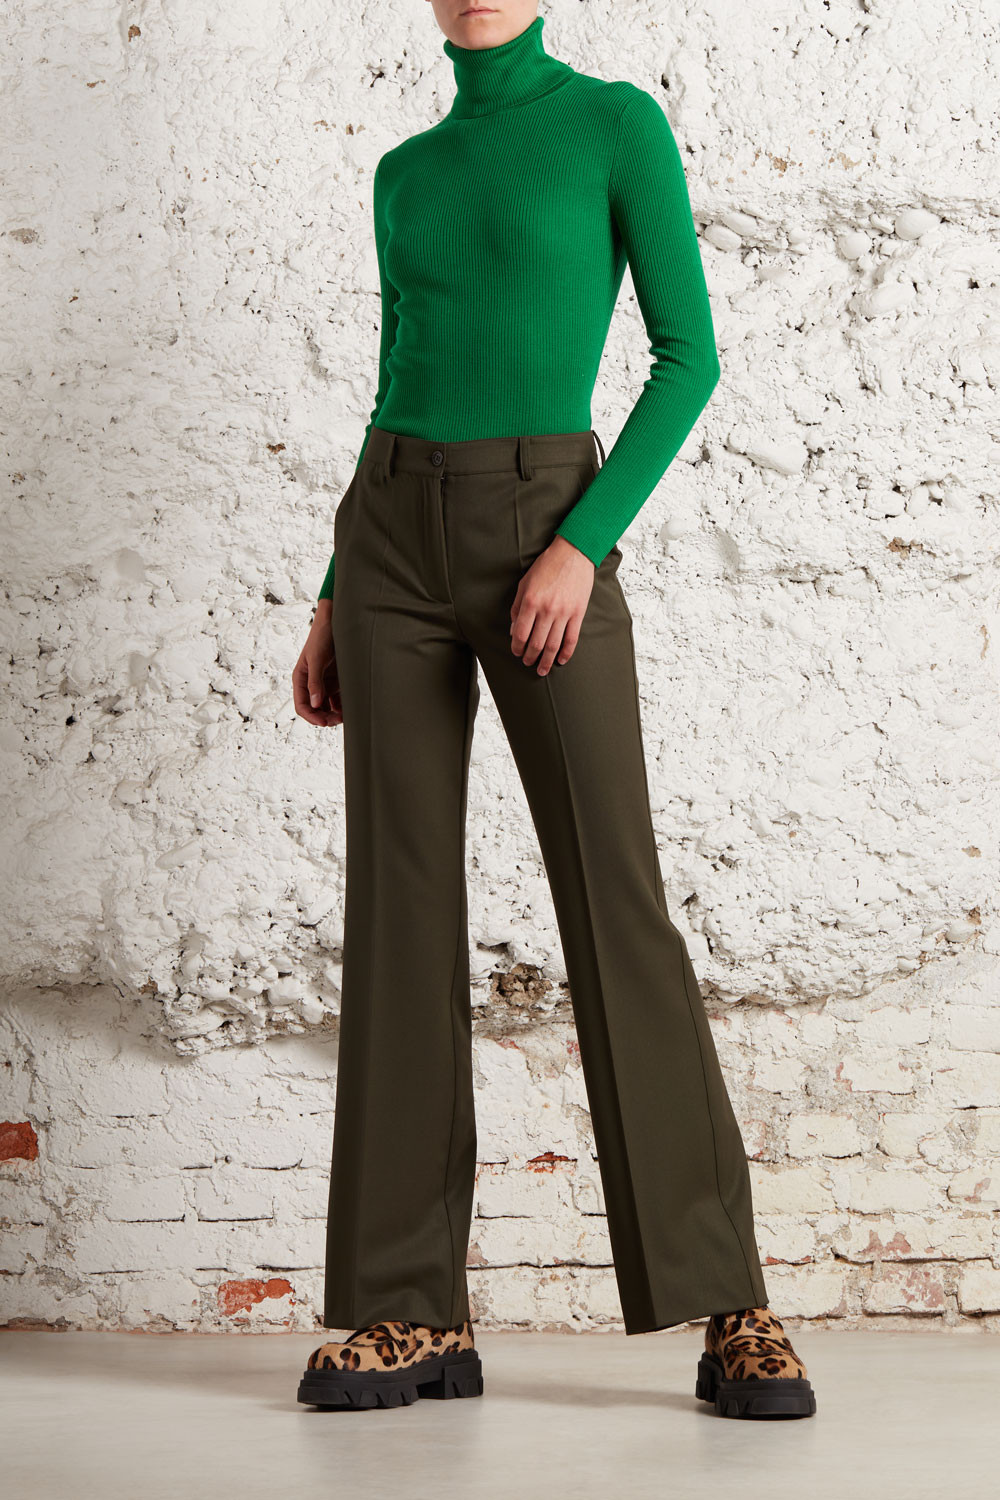 TURTLE NECK RIBBED KNITWEAR - LEILAD512552X